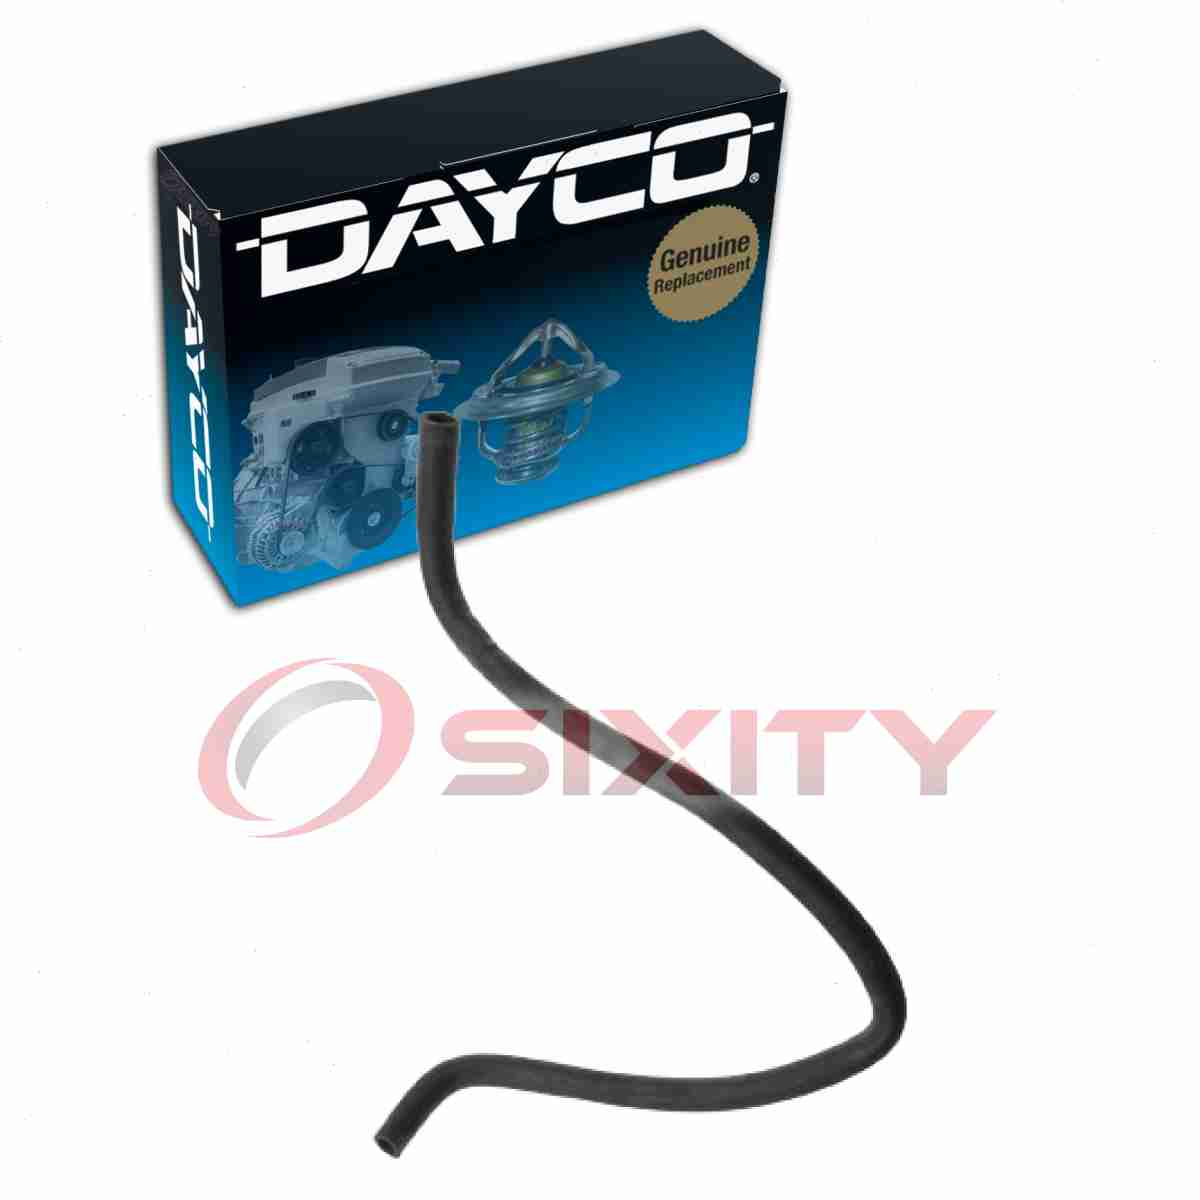 Heater Outlet Heater Hose For 1999-2004 Jeep Grand Cherokee 4.0L 6 Cyl Dayco